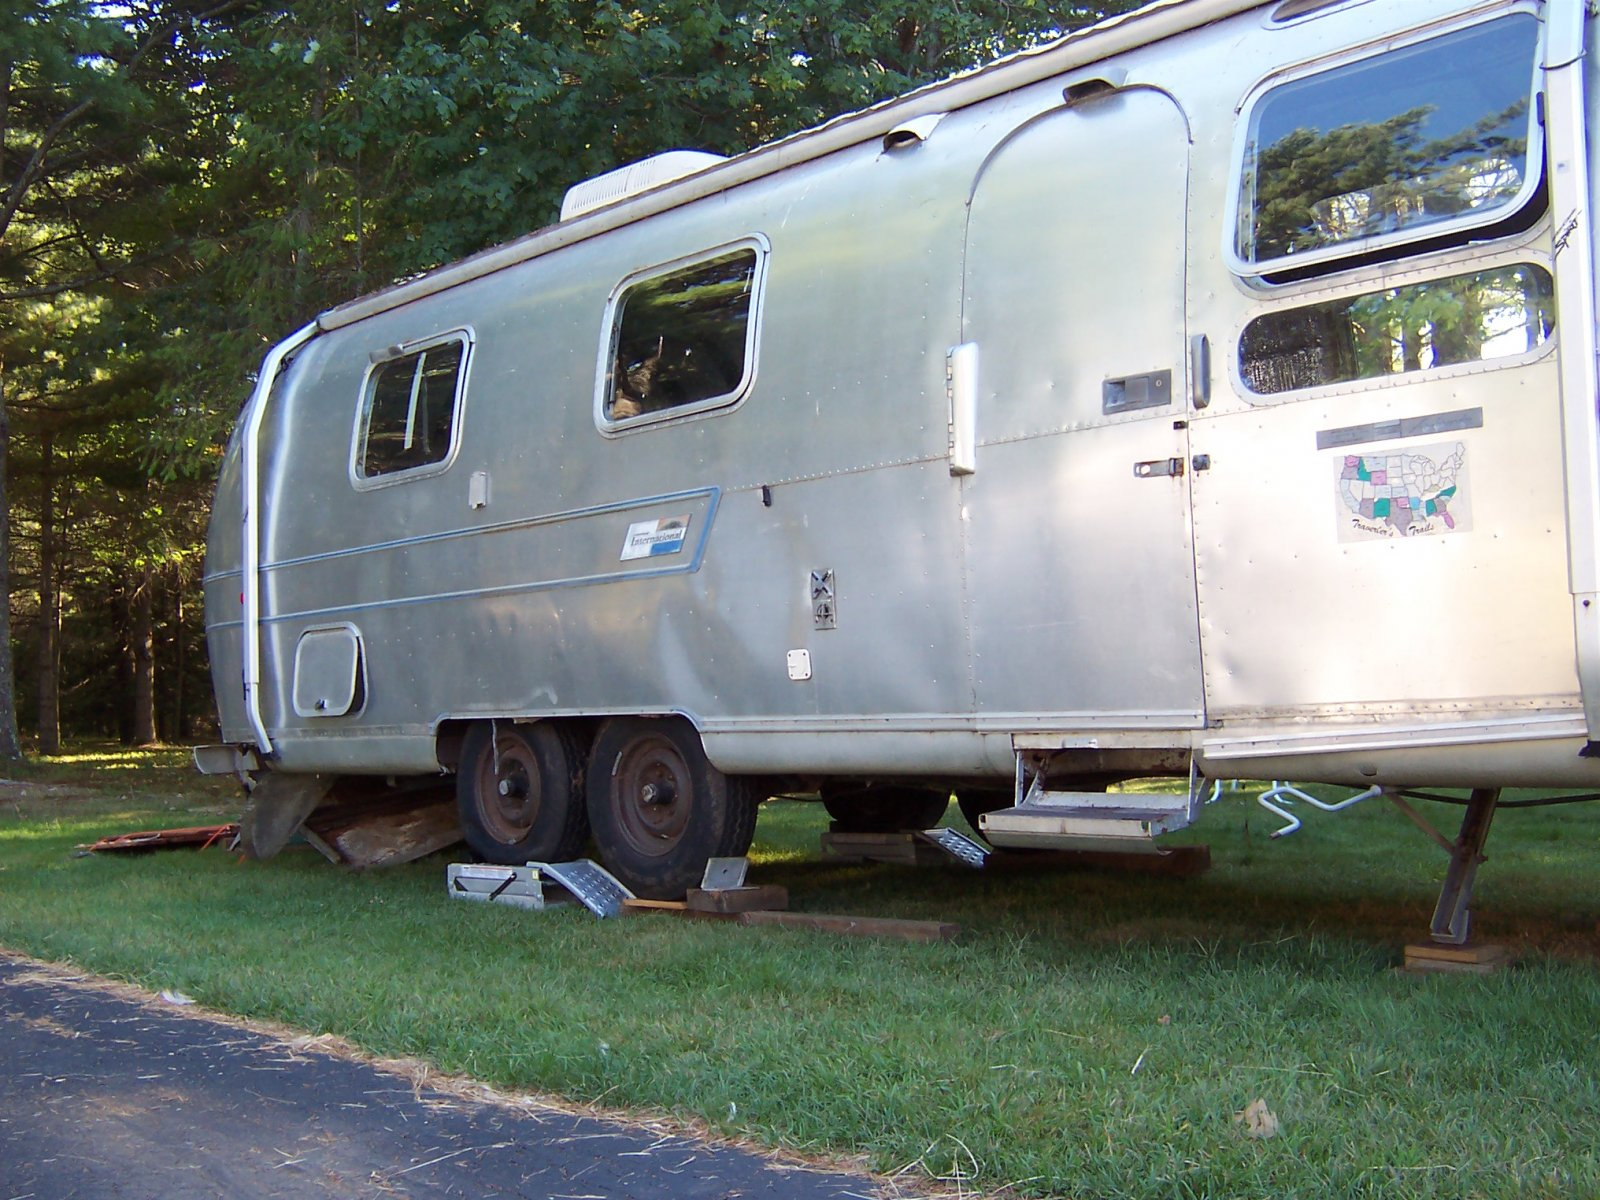 Click image for larger version  Name:Summer 2010 Airstream 001.jpg Views:97 Size:379.6 KB ID:109673